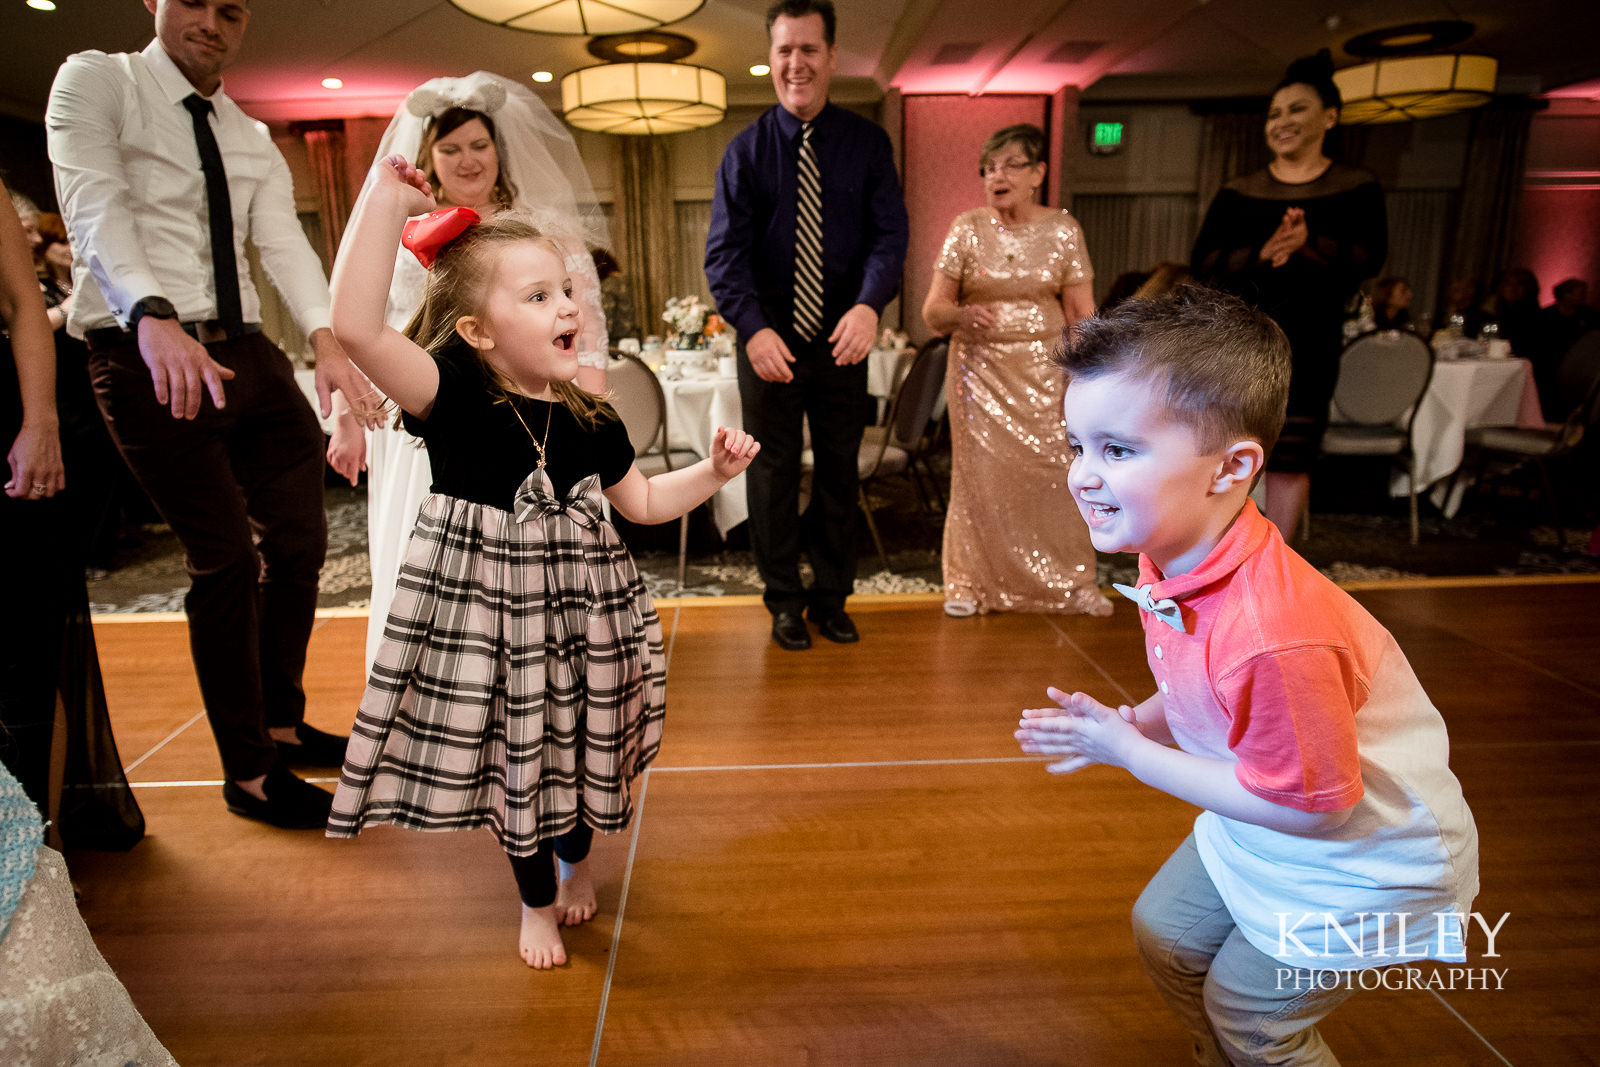 099 - Woodcliff Hotel - Rochester NY wedding photo - Kniley Photography.jpg